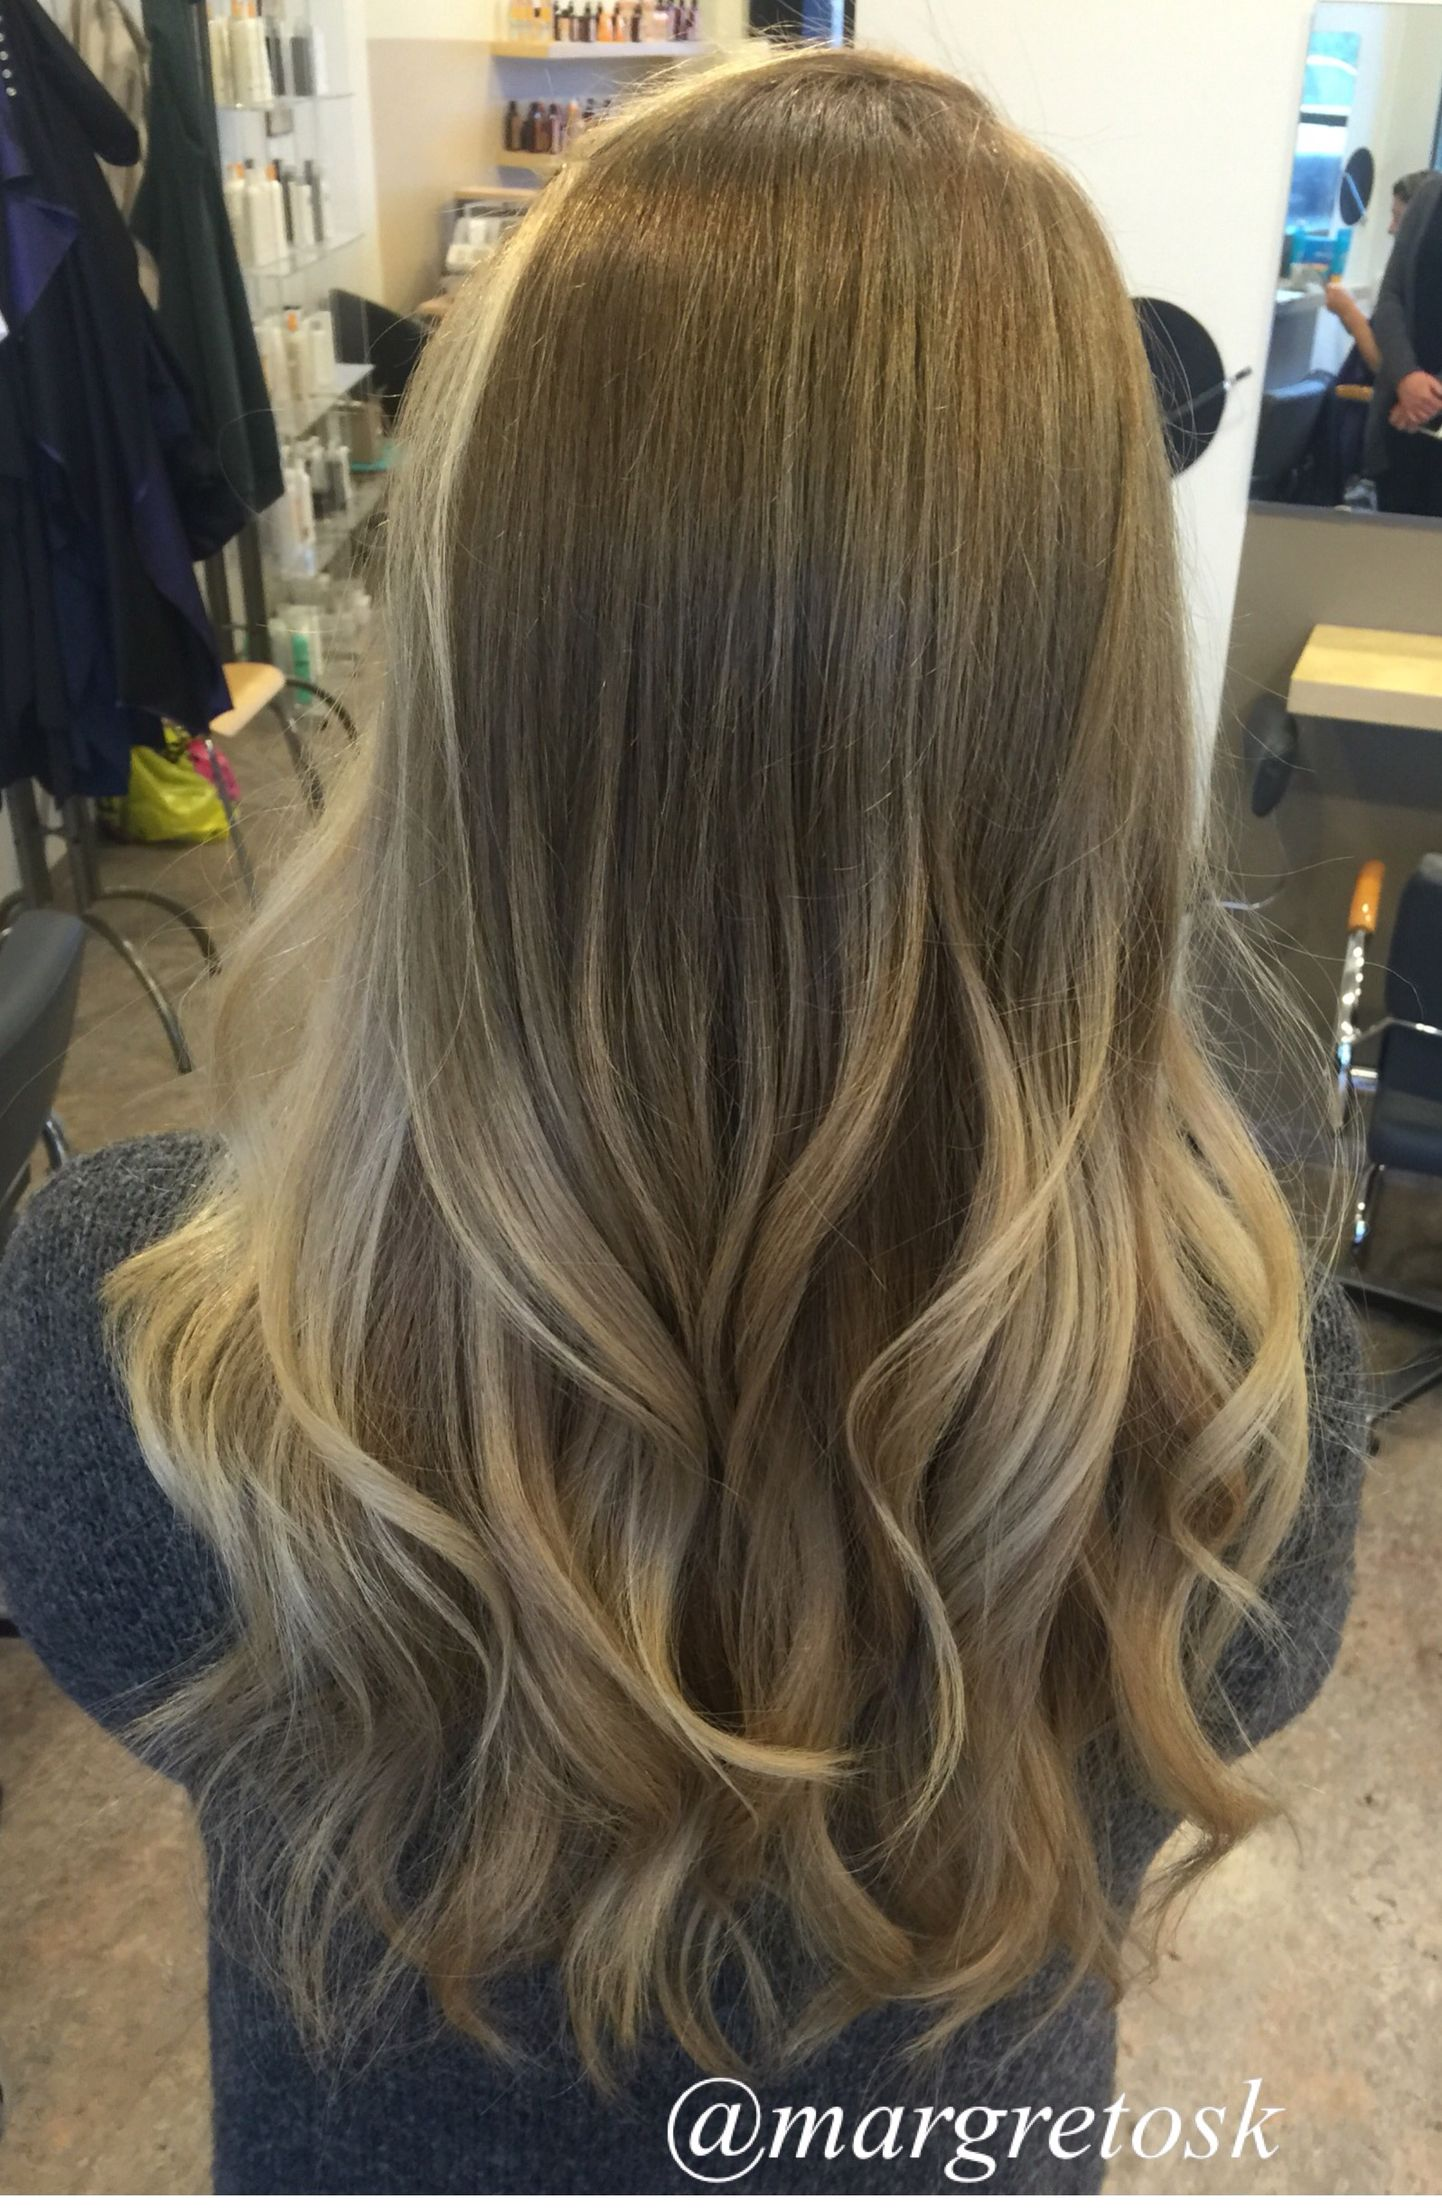 Natural Blonde With Darker Roots Blonde Hair Color